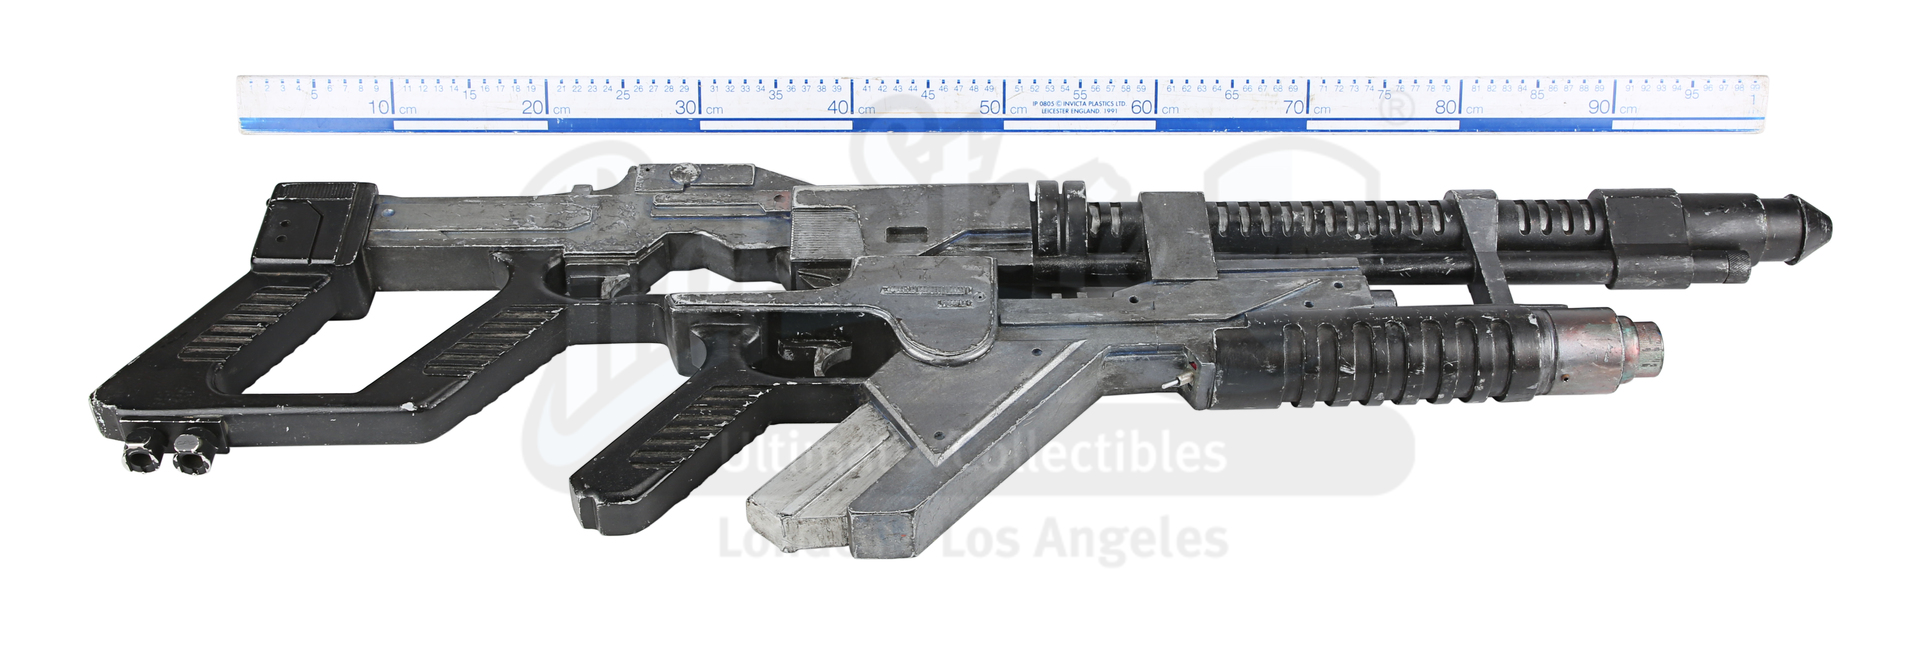 ALIEN RESURRECTION (1997) - Light-Up AR-2 Rifle - Image 10 of 19